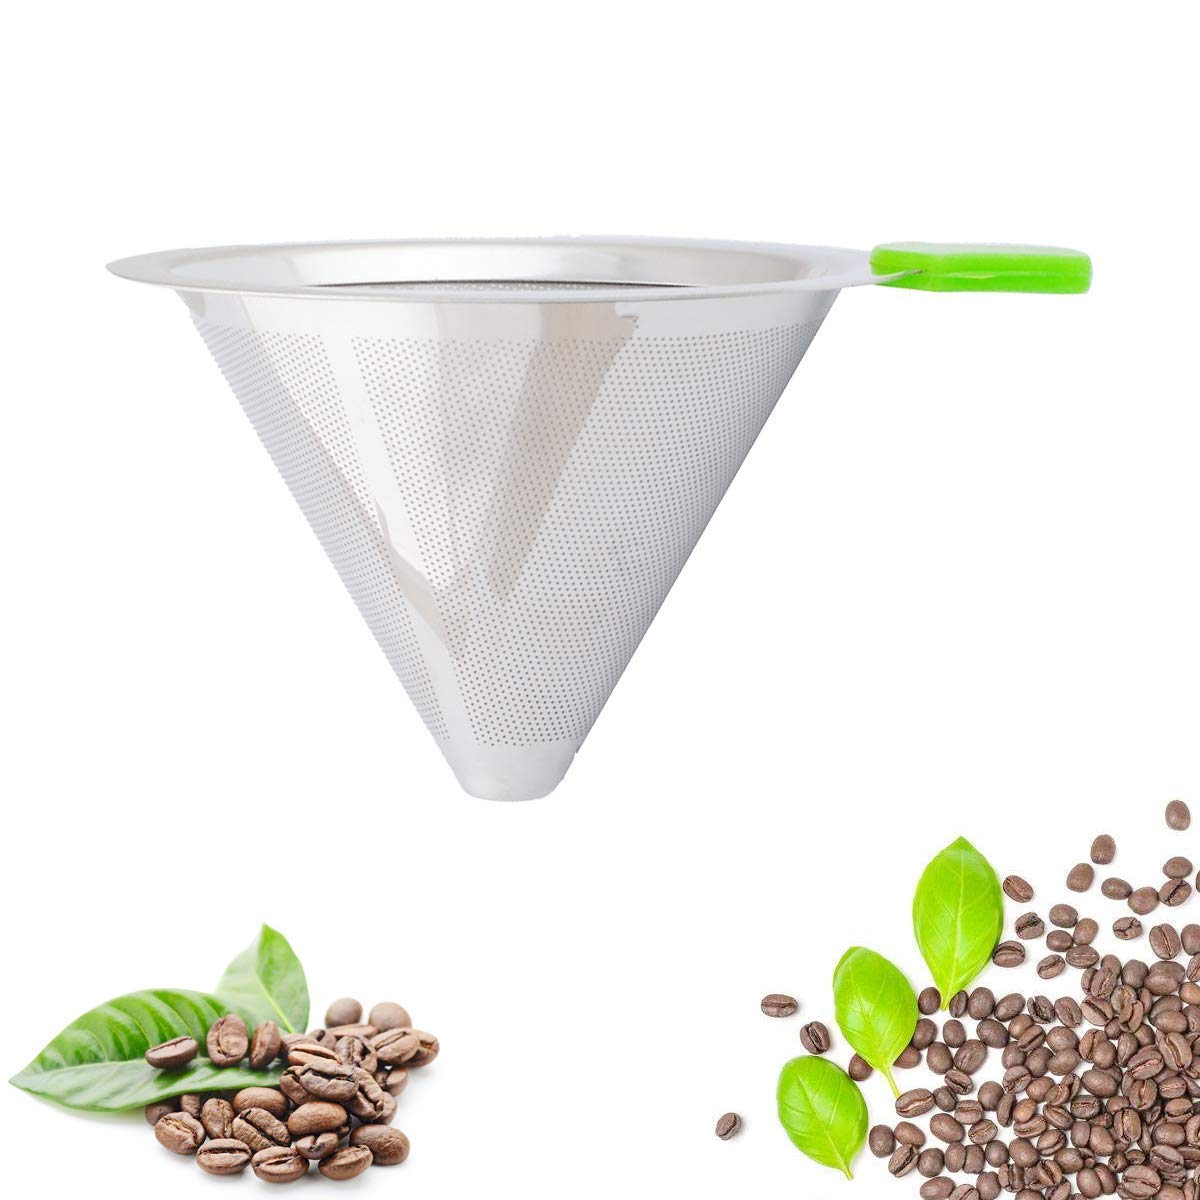 Ketofa Pour Over Coffee Filter Stainless Steel Coffee Drip Cone with Separate Stand and Silicone Handle Paperless Reusable Coffee Brewer Maker for 1-4 Cups